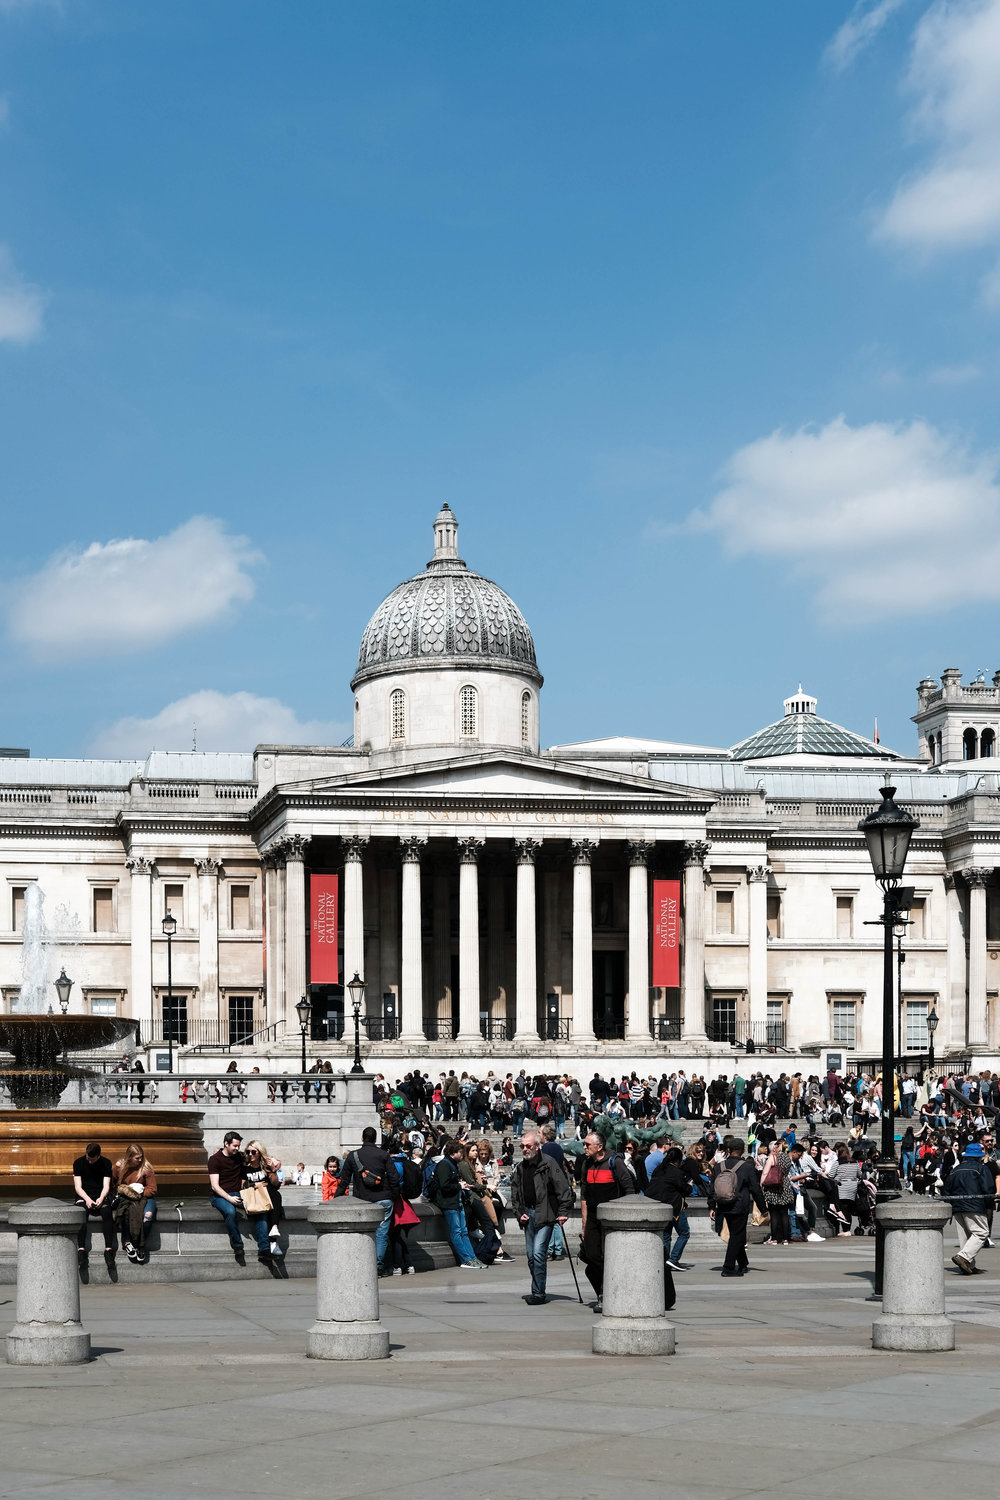 "<p style=""font-family:brandon-grotesque;font-weight:500; font-size:11px; text-center:left; color:light grey;letter-spacing: 1px"">APRIL 6, 2018 • THE NATIONAL GALLERY • 📍London, UK 🇬🇧</p>"